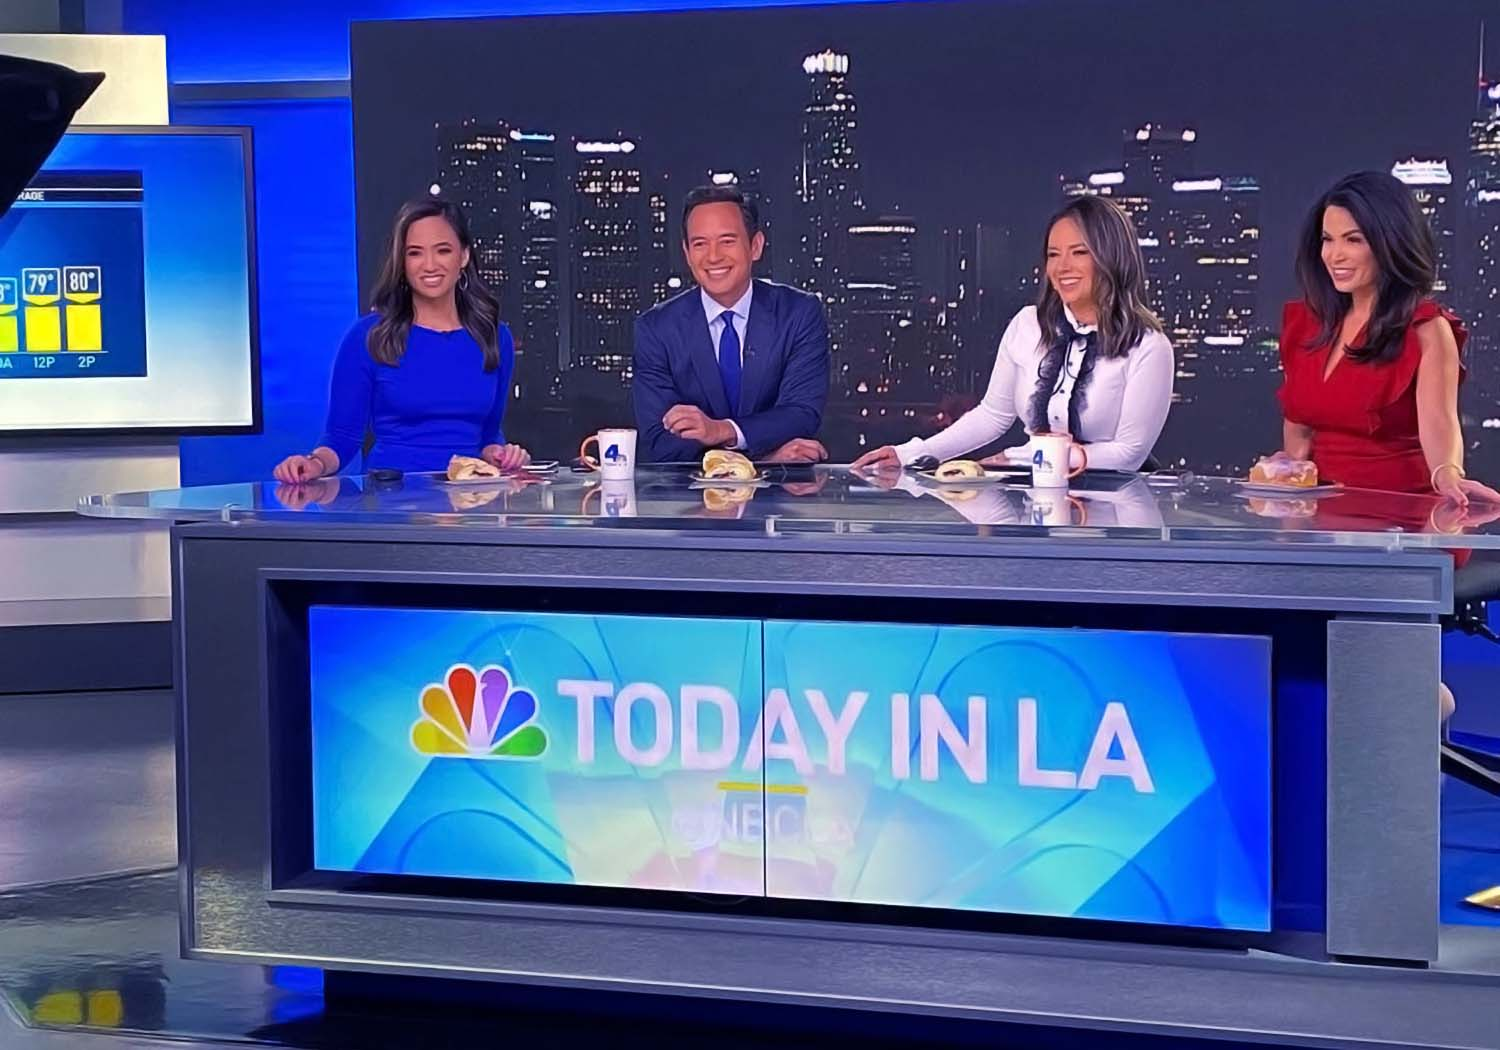 Alysha Del Valle with other anchors